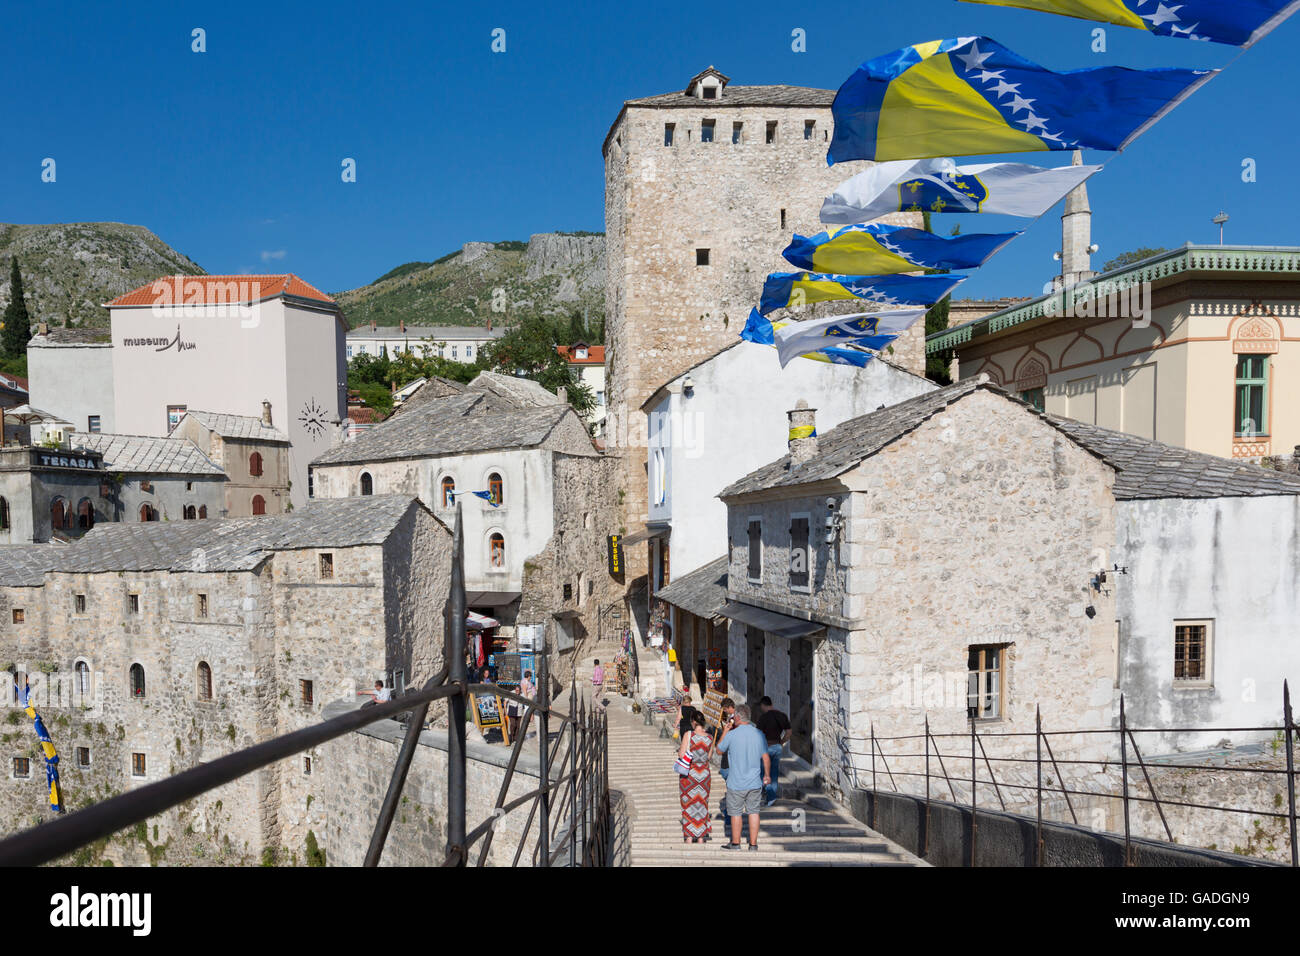 Mostar, Herzegovina-Neretva, Bosnia and Herzegovina.  Old Town seen from the single-arch Stari Most, or Old Bridge. - Stock Image